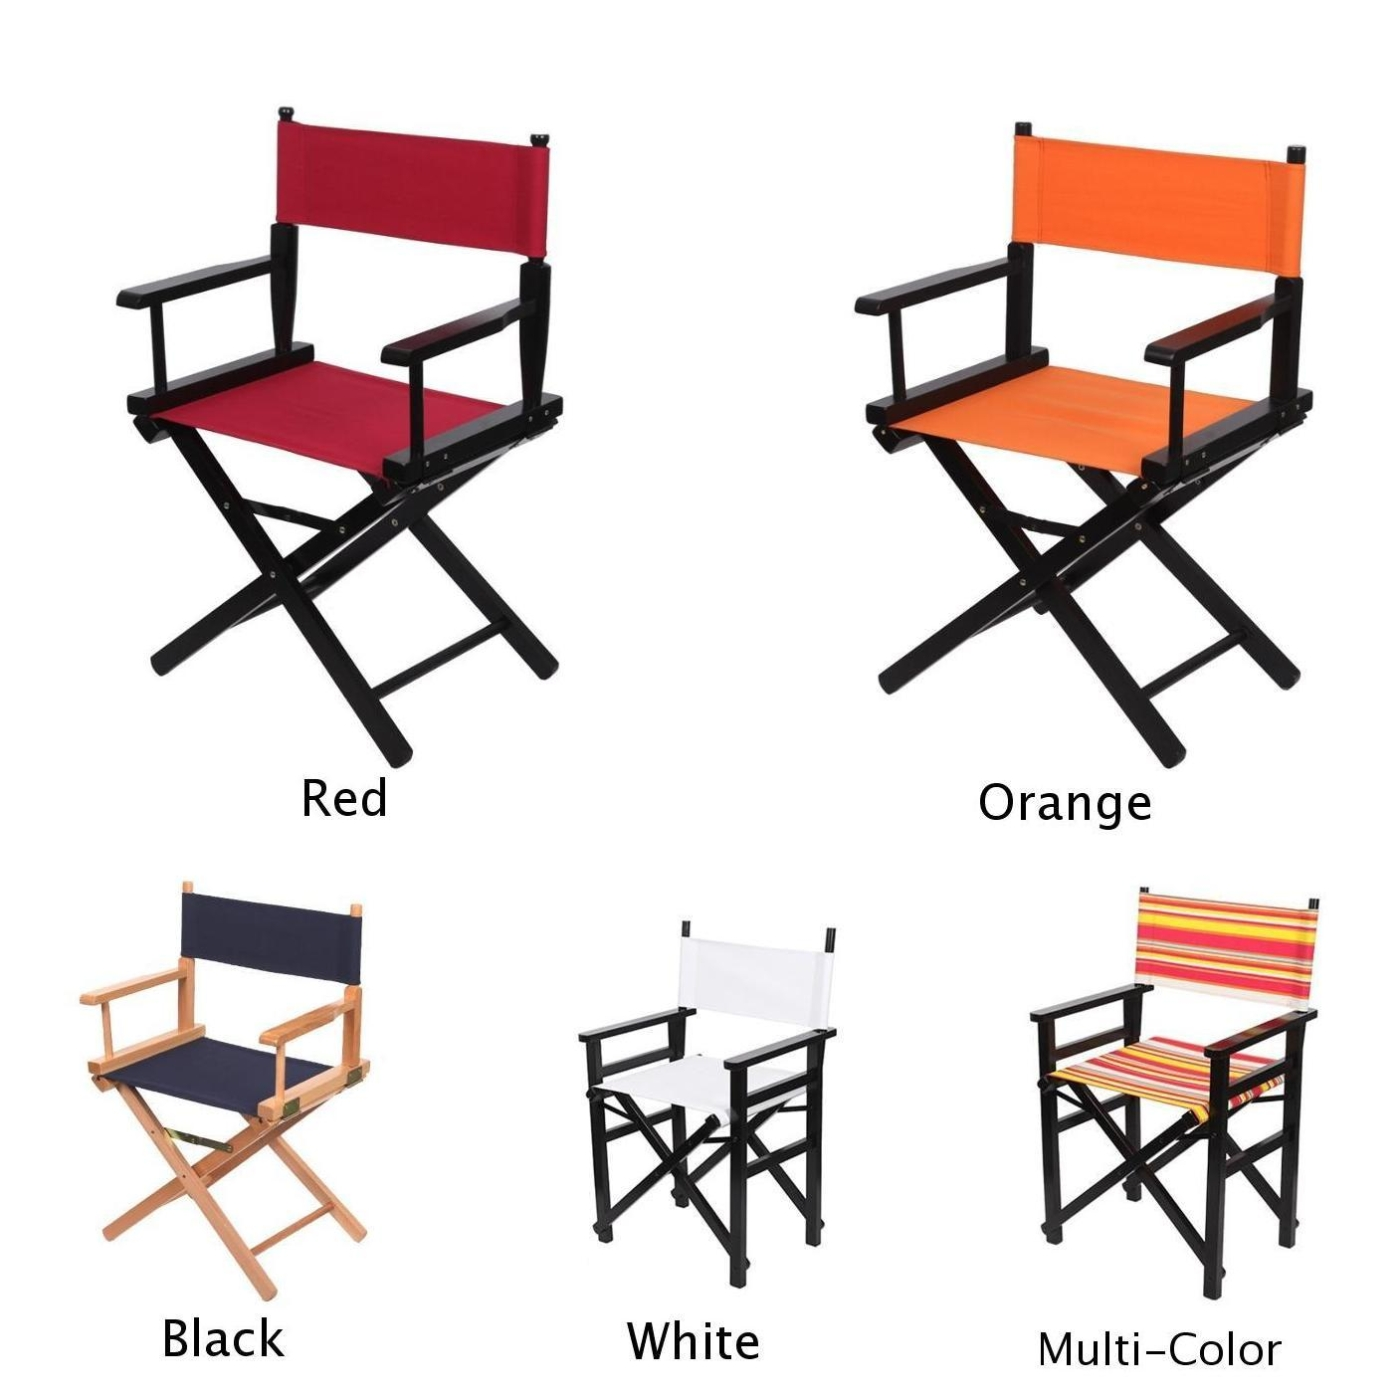 Wondrous Us 6 32 28 Off Outdoor Furniture Chair Cover Canvas Camping Chair Cover Fishing Lounge Picnic Folding Seat Cloth Shell Garden Yard Supplies In Patio Ncnpc Chair Design For Home Ncnpcorg